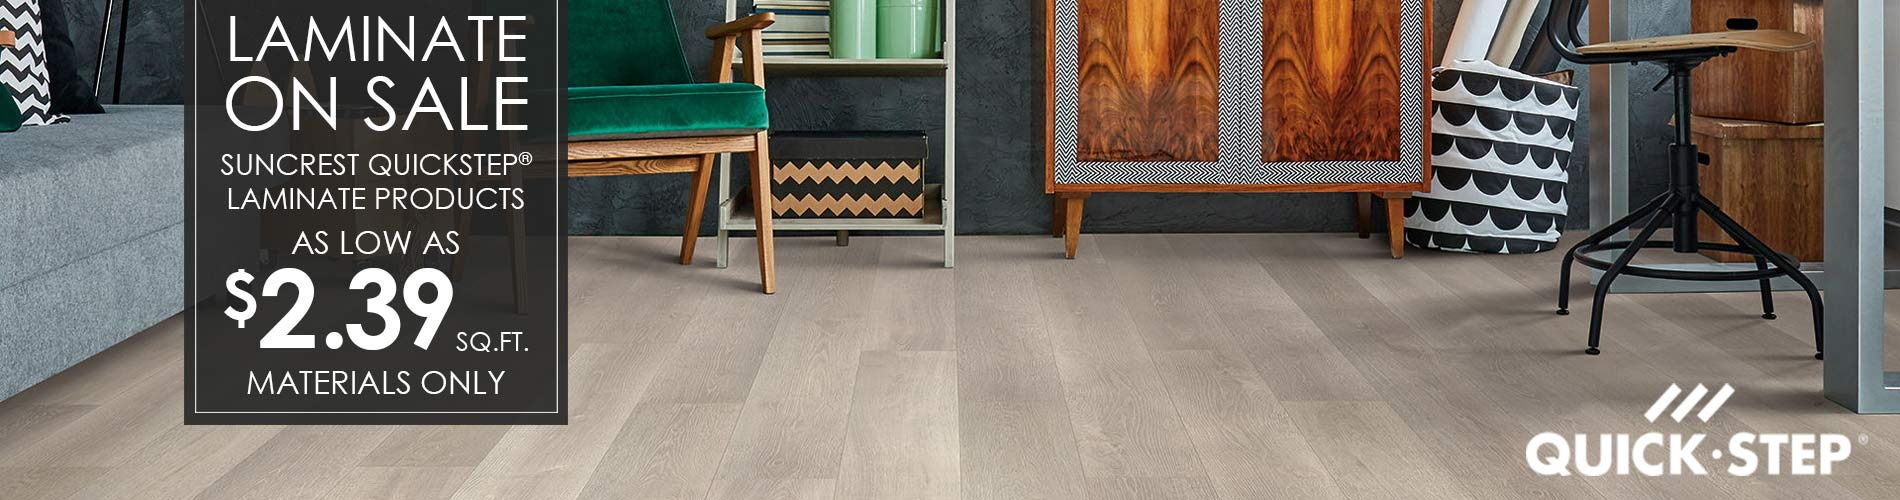 Suncrest Quickstep® laminate products as low as $2.39 sq.ft. (materials only) at Not Just Carpet!